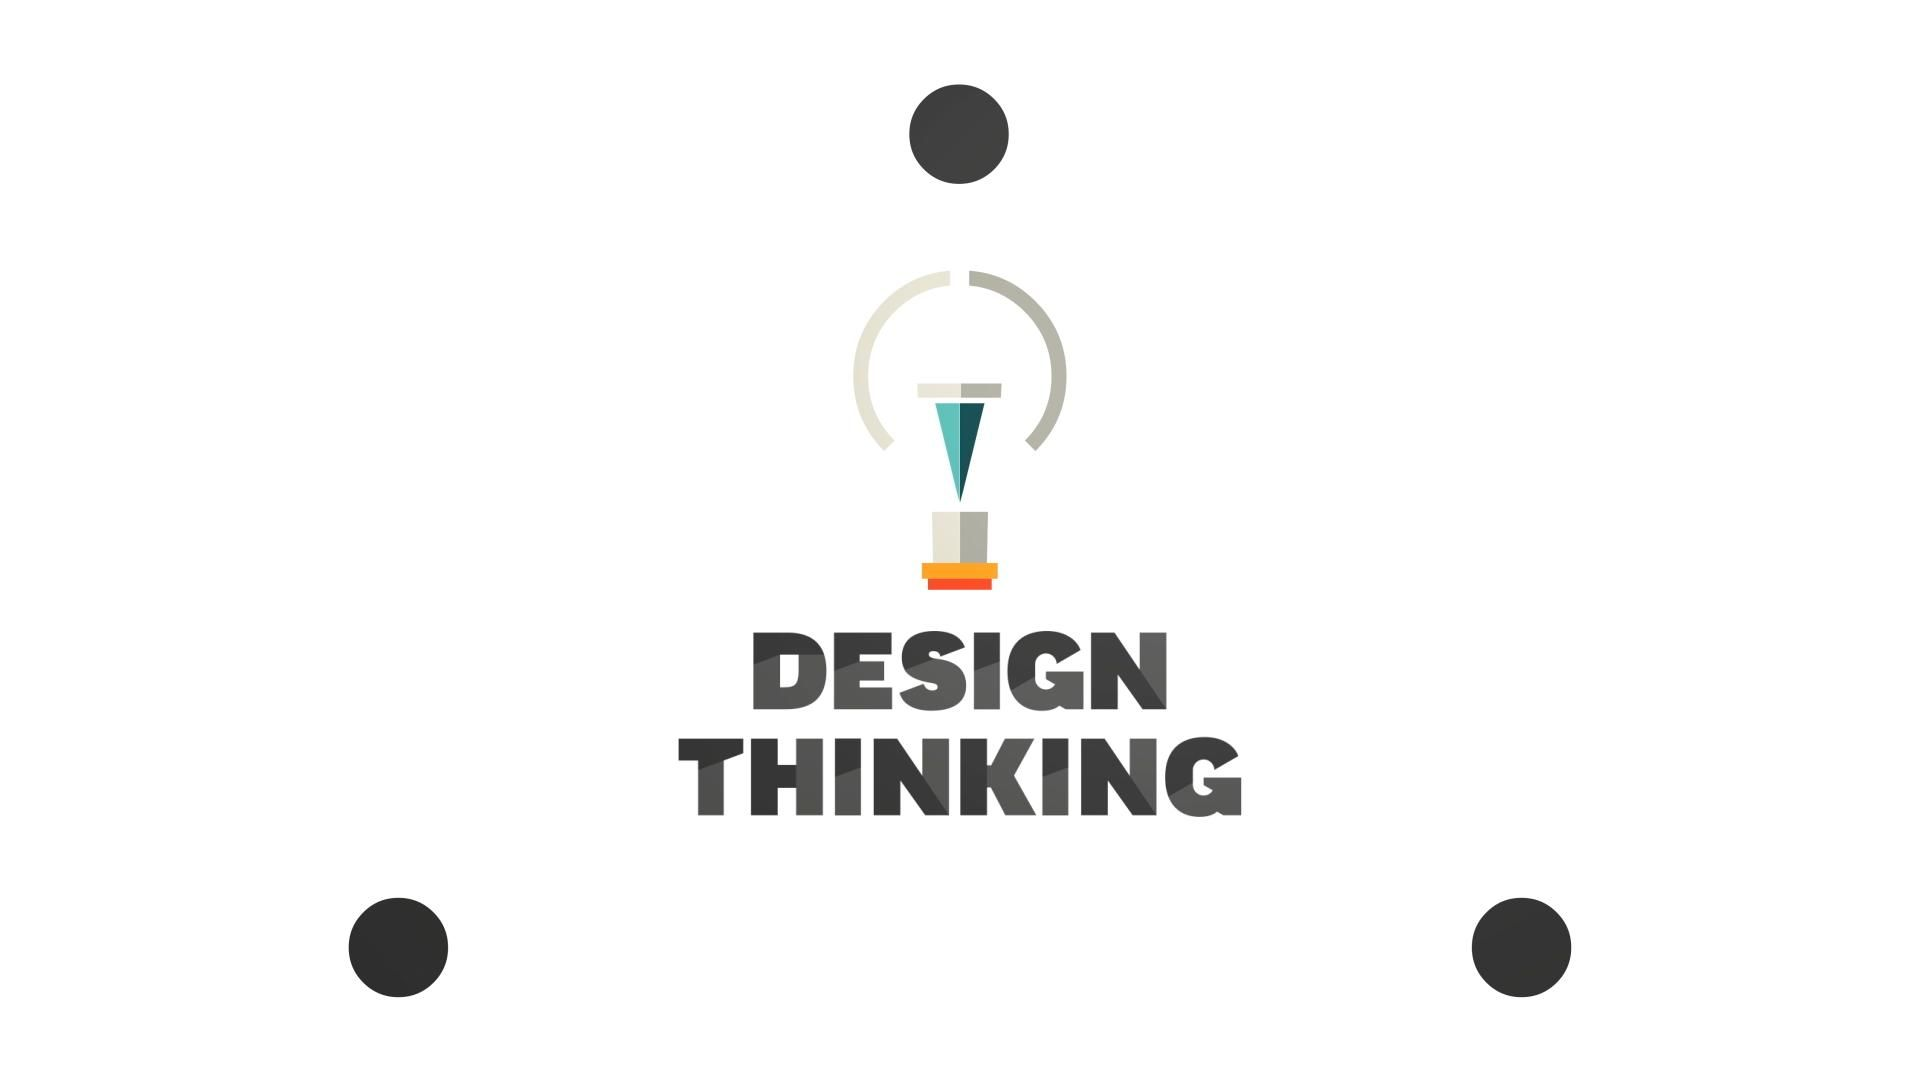 10 Best Design Thinking Courses & Certifications - Learn Design Thinking Online